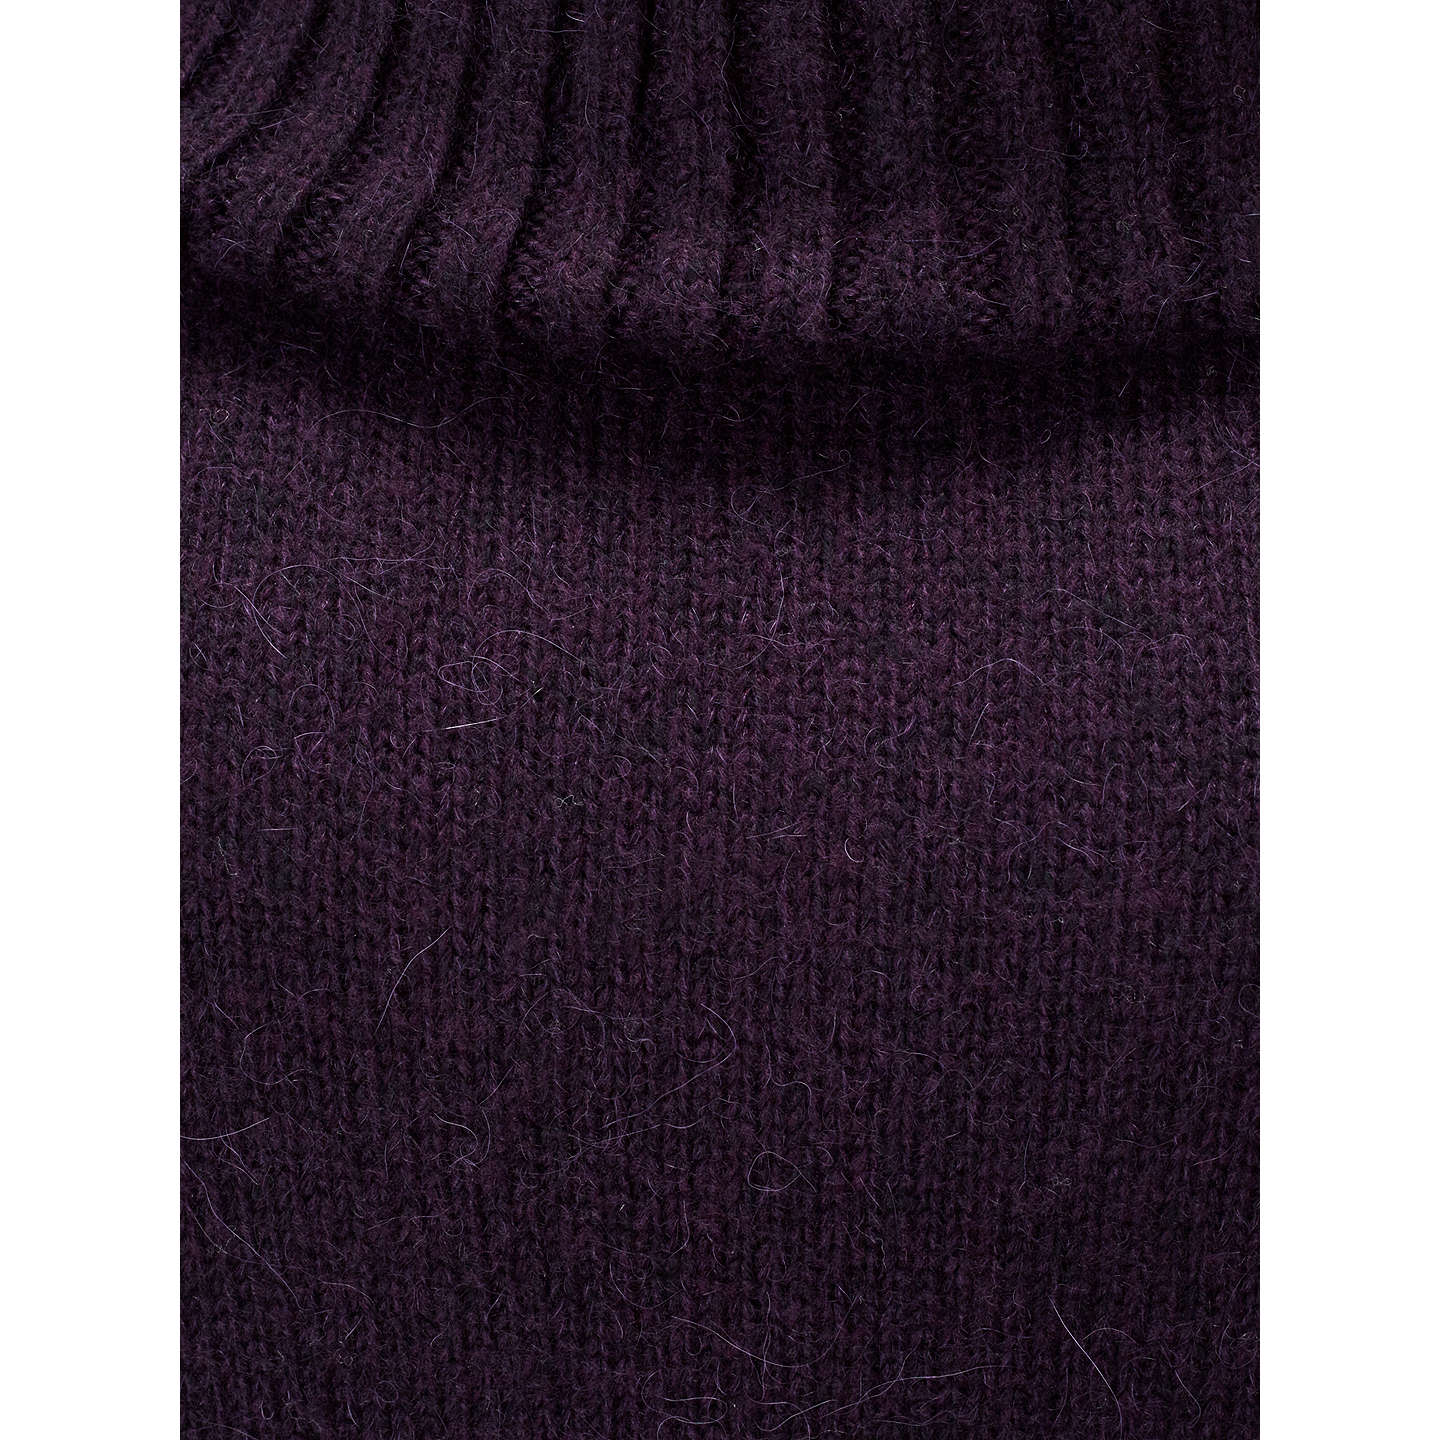 BuyPhase Eight Annalise Swing Jumper, Port, XS Online at johnlewis.com